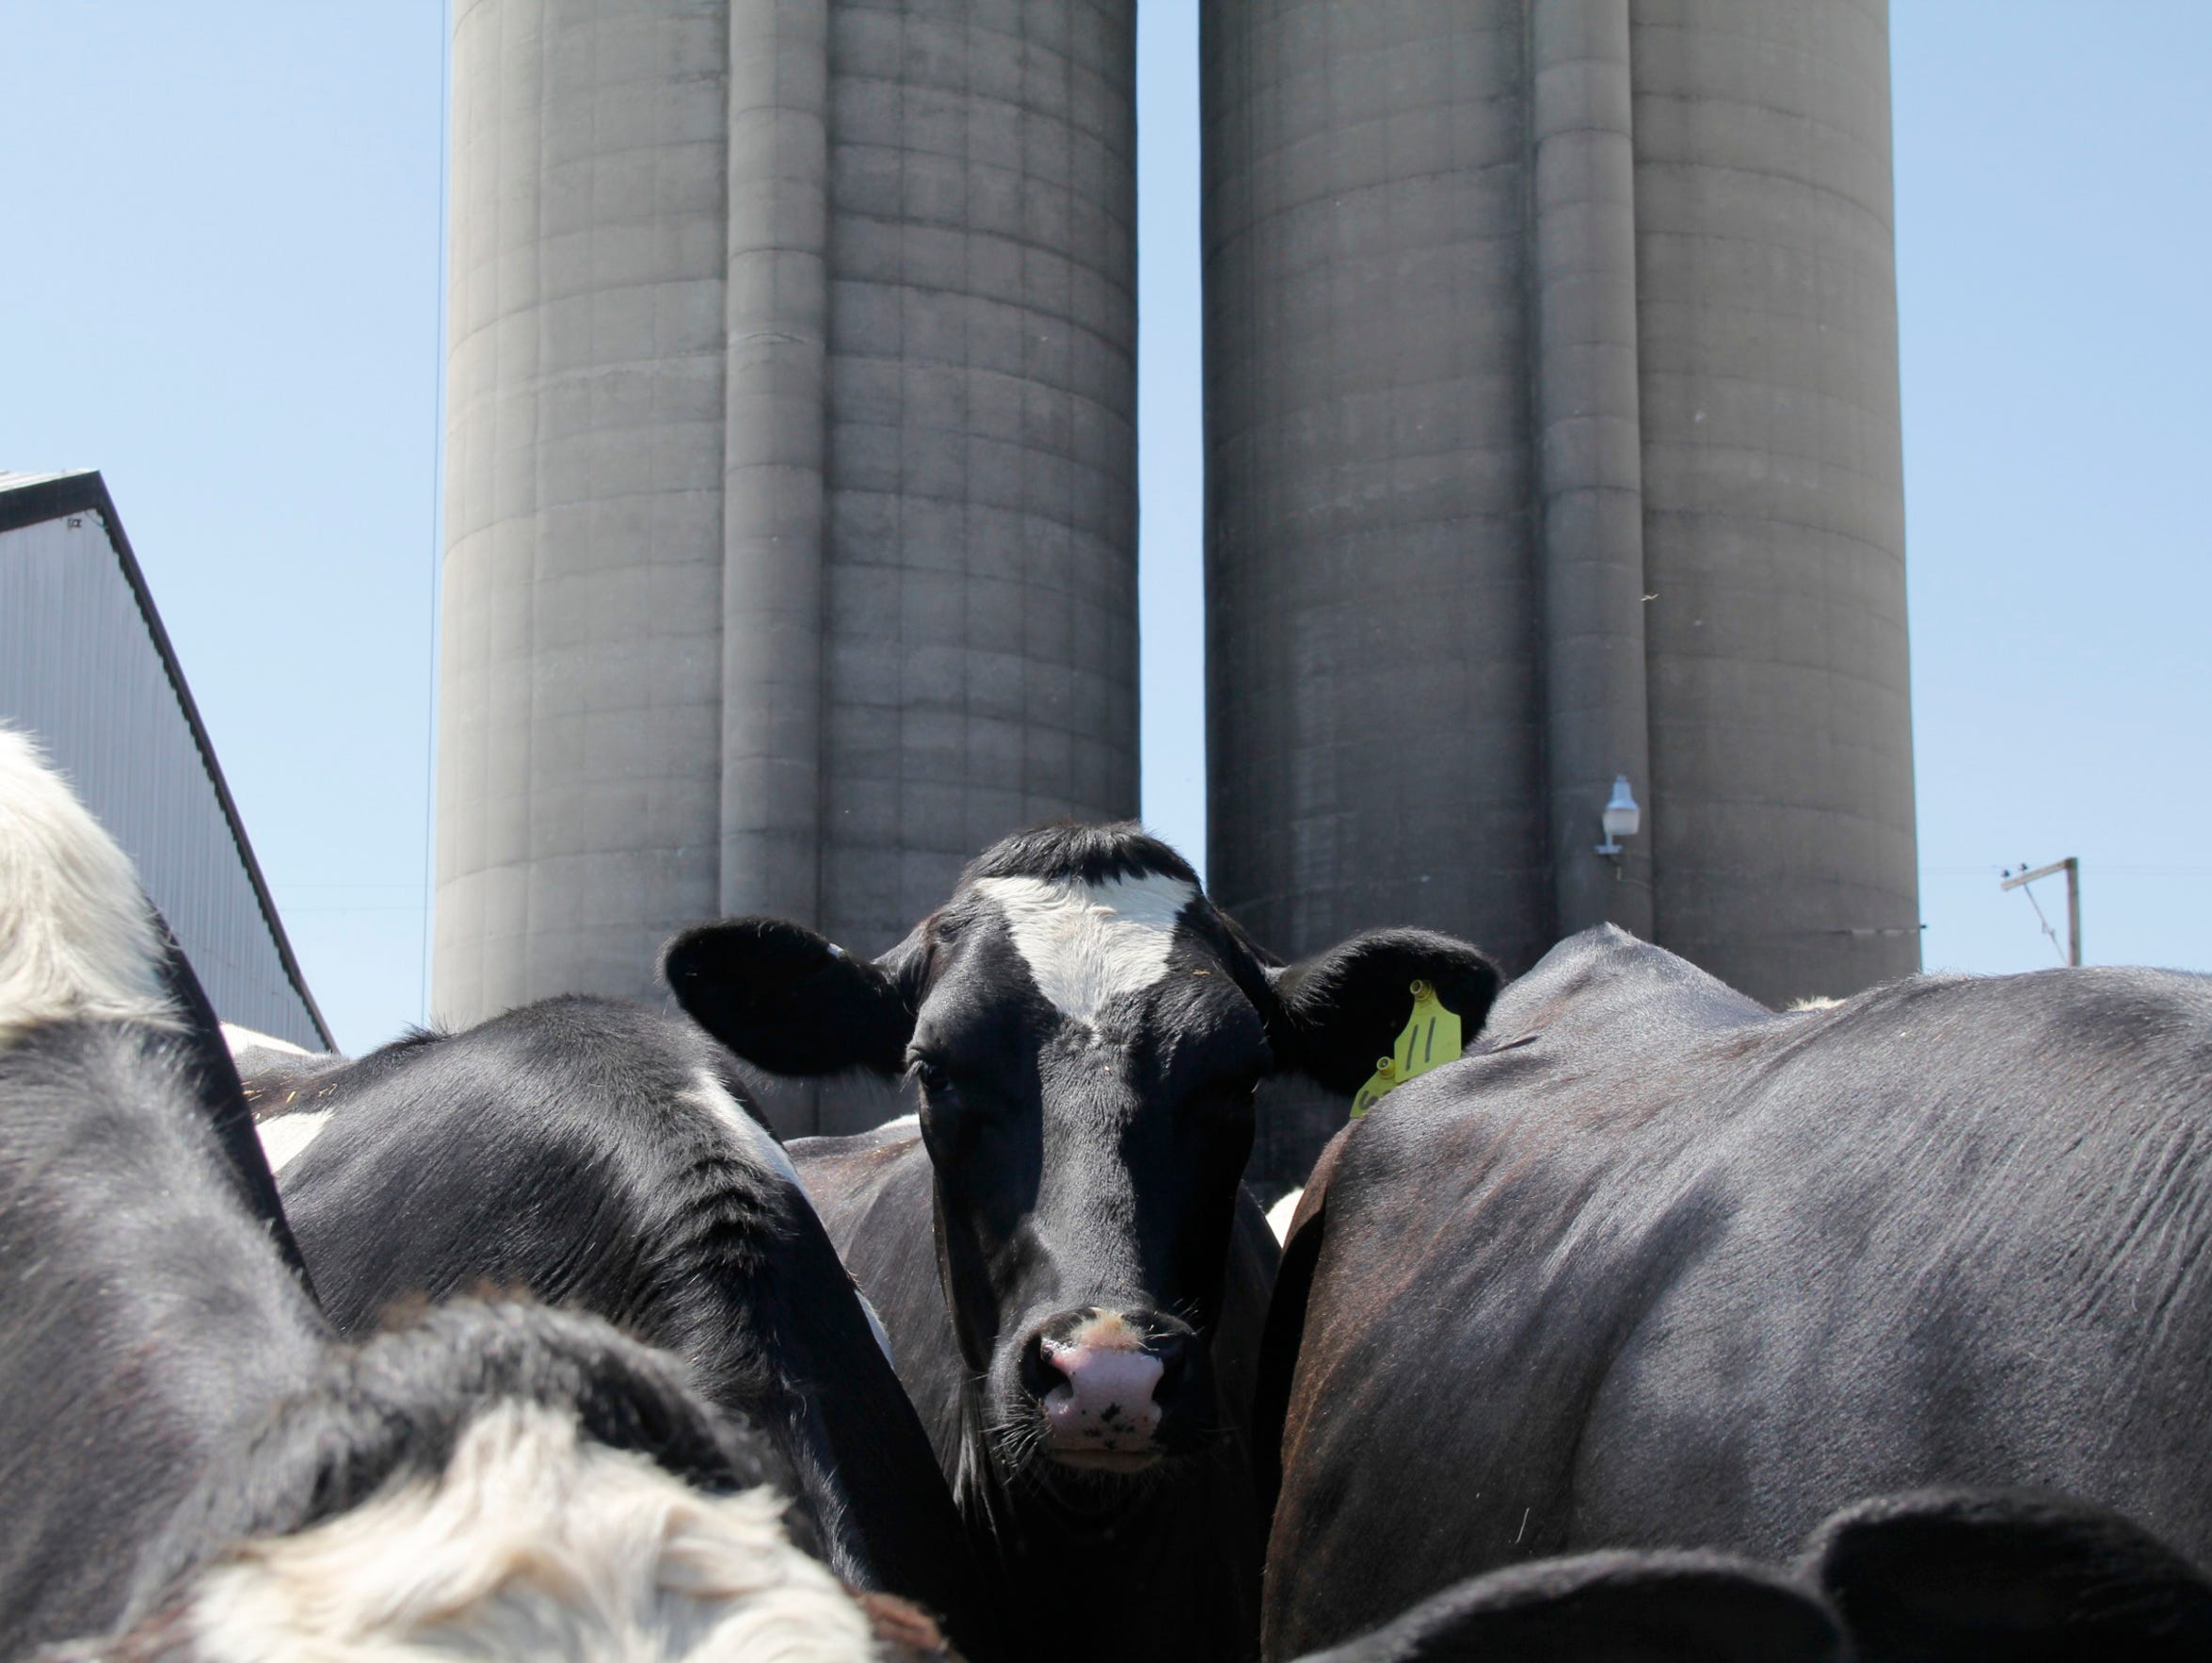 Manure from dairy operations is blamed in part for